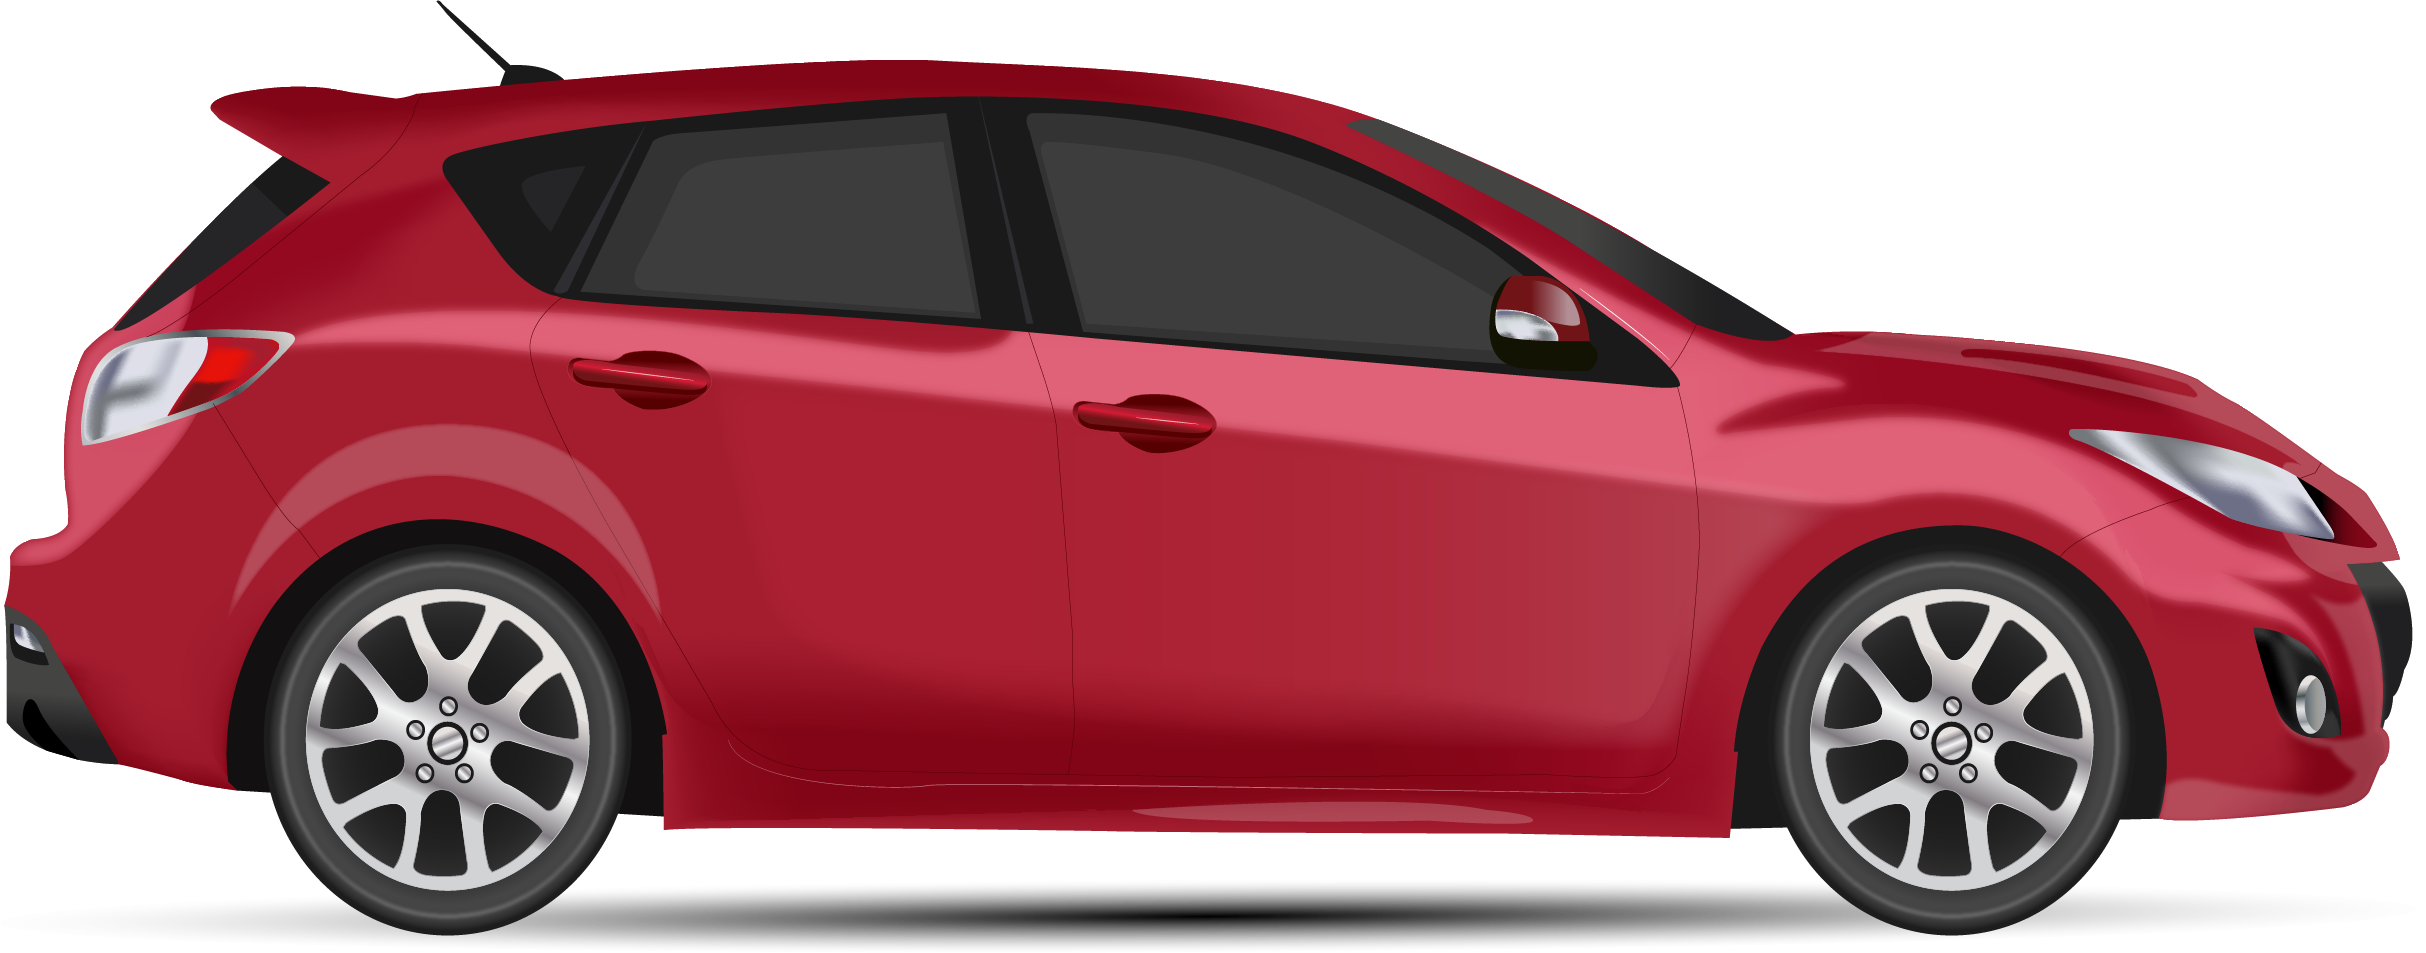 Clipart cars transparent background. Car png free images